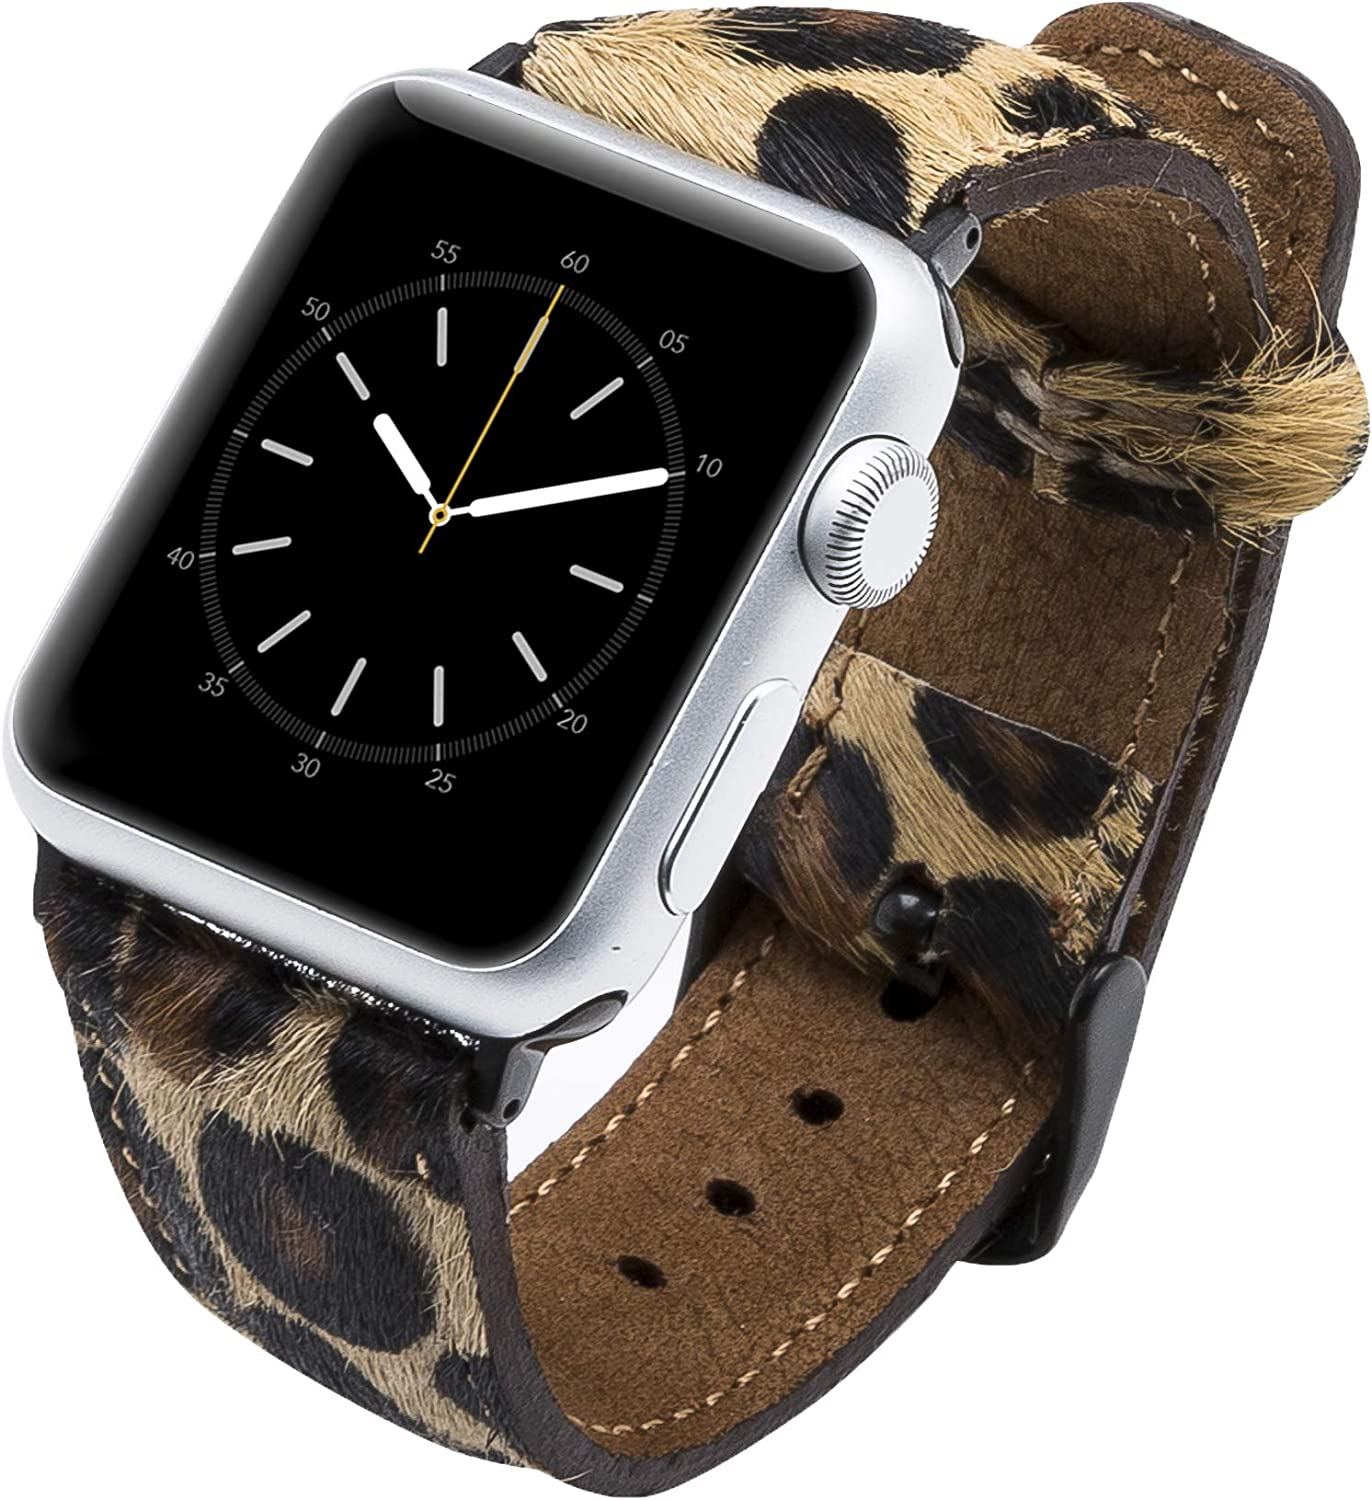 Trust Venito San Antonio Mall Tuscany Leather Watch Band Apple 38 Compatible with